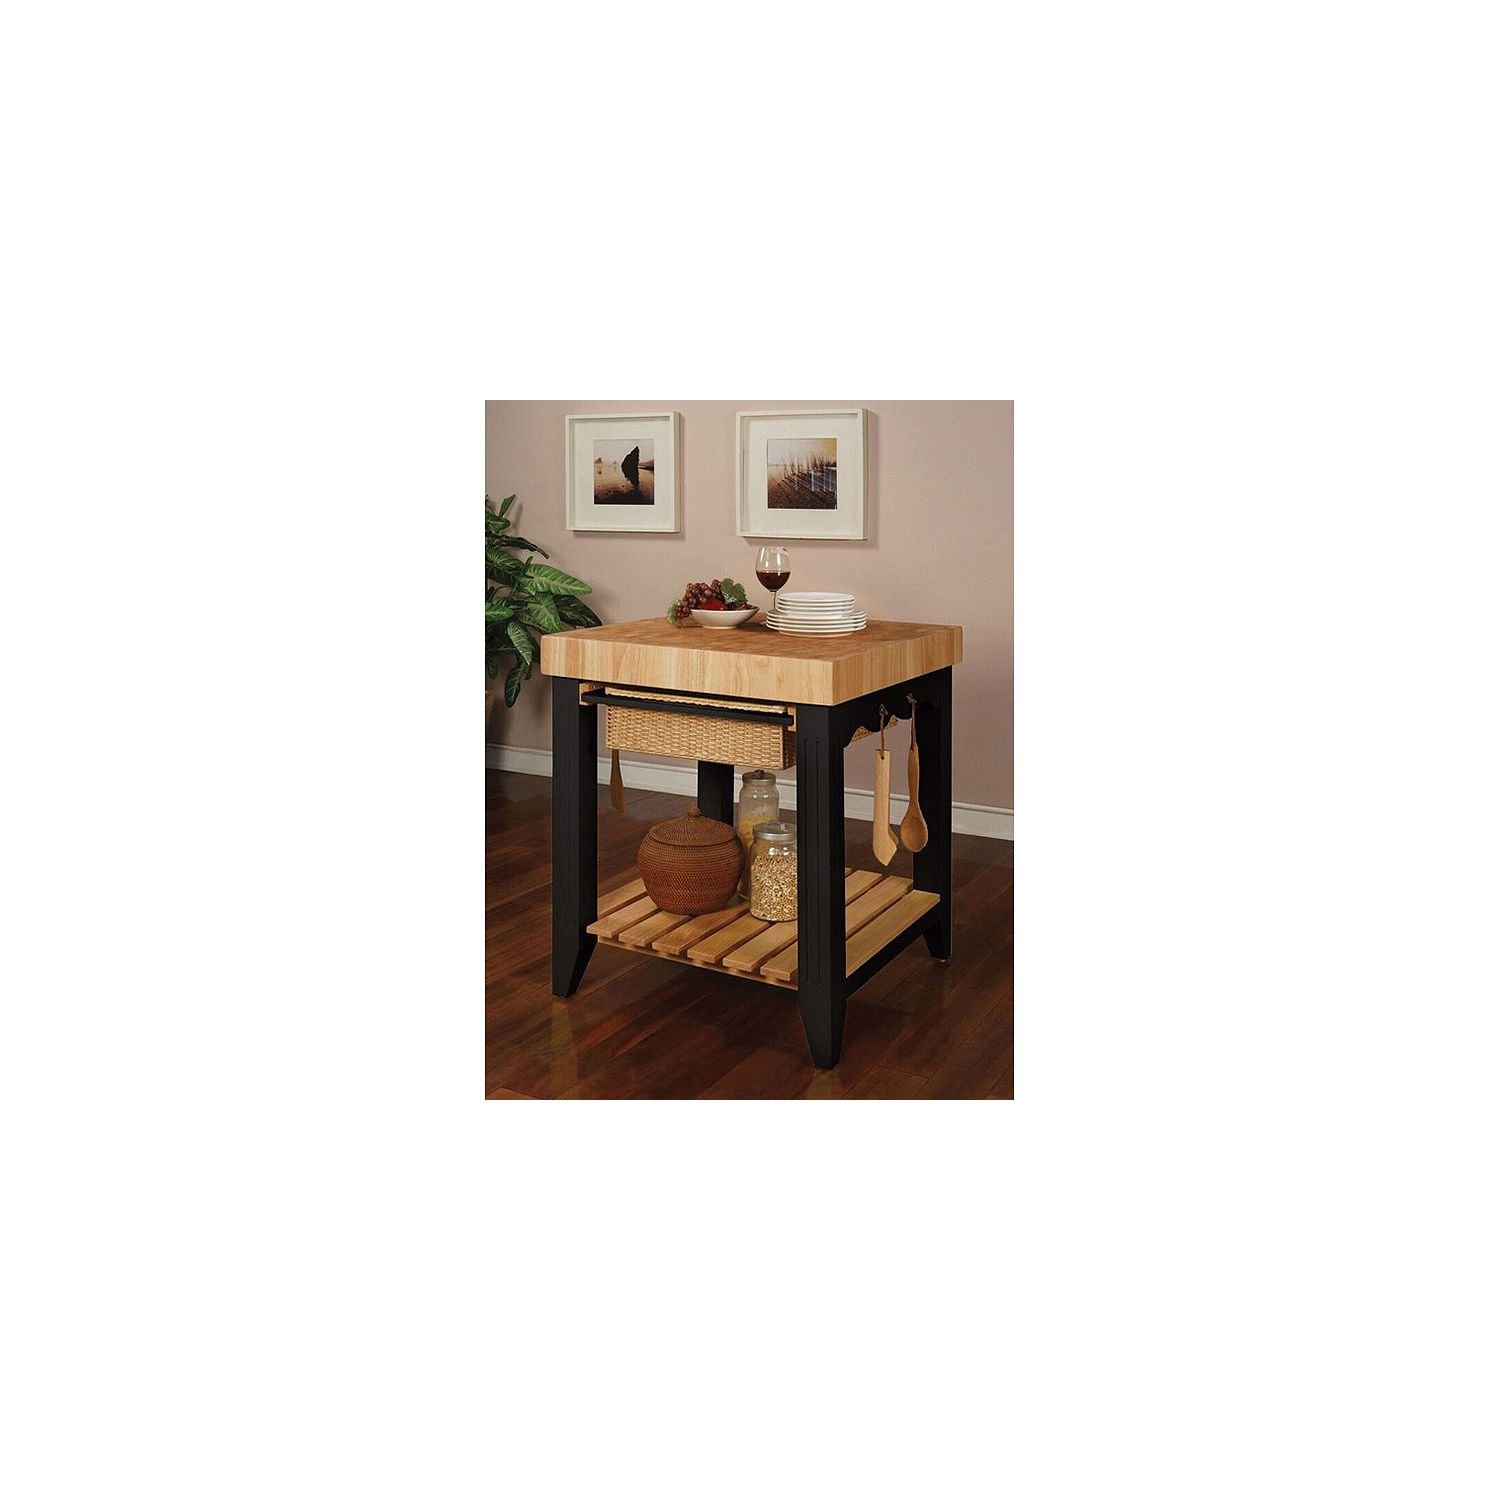 Kitchen Island Table Wood Butcher with Block Top, Black and Natural Finish